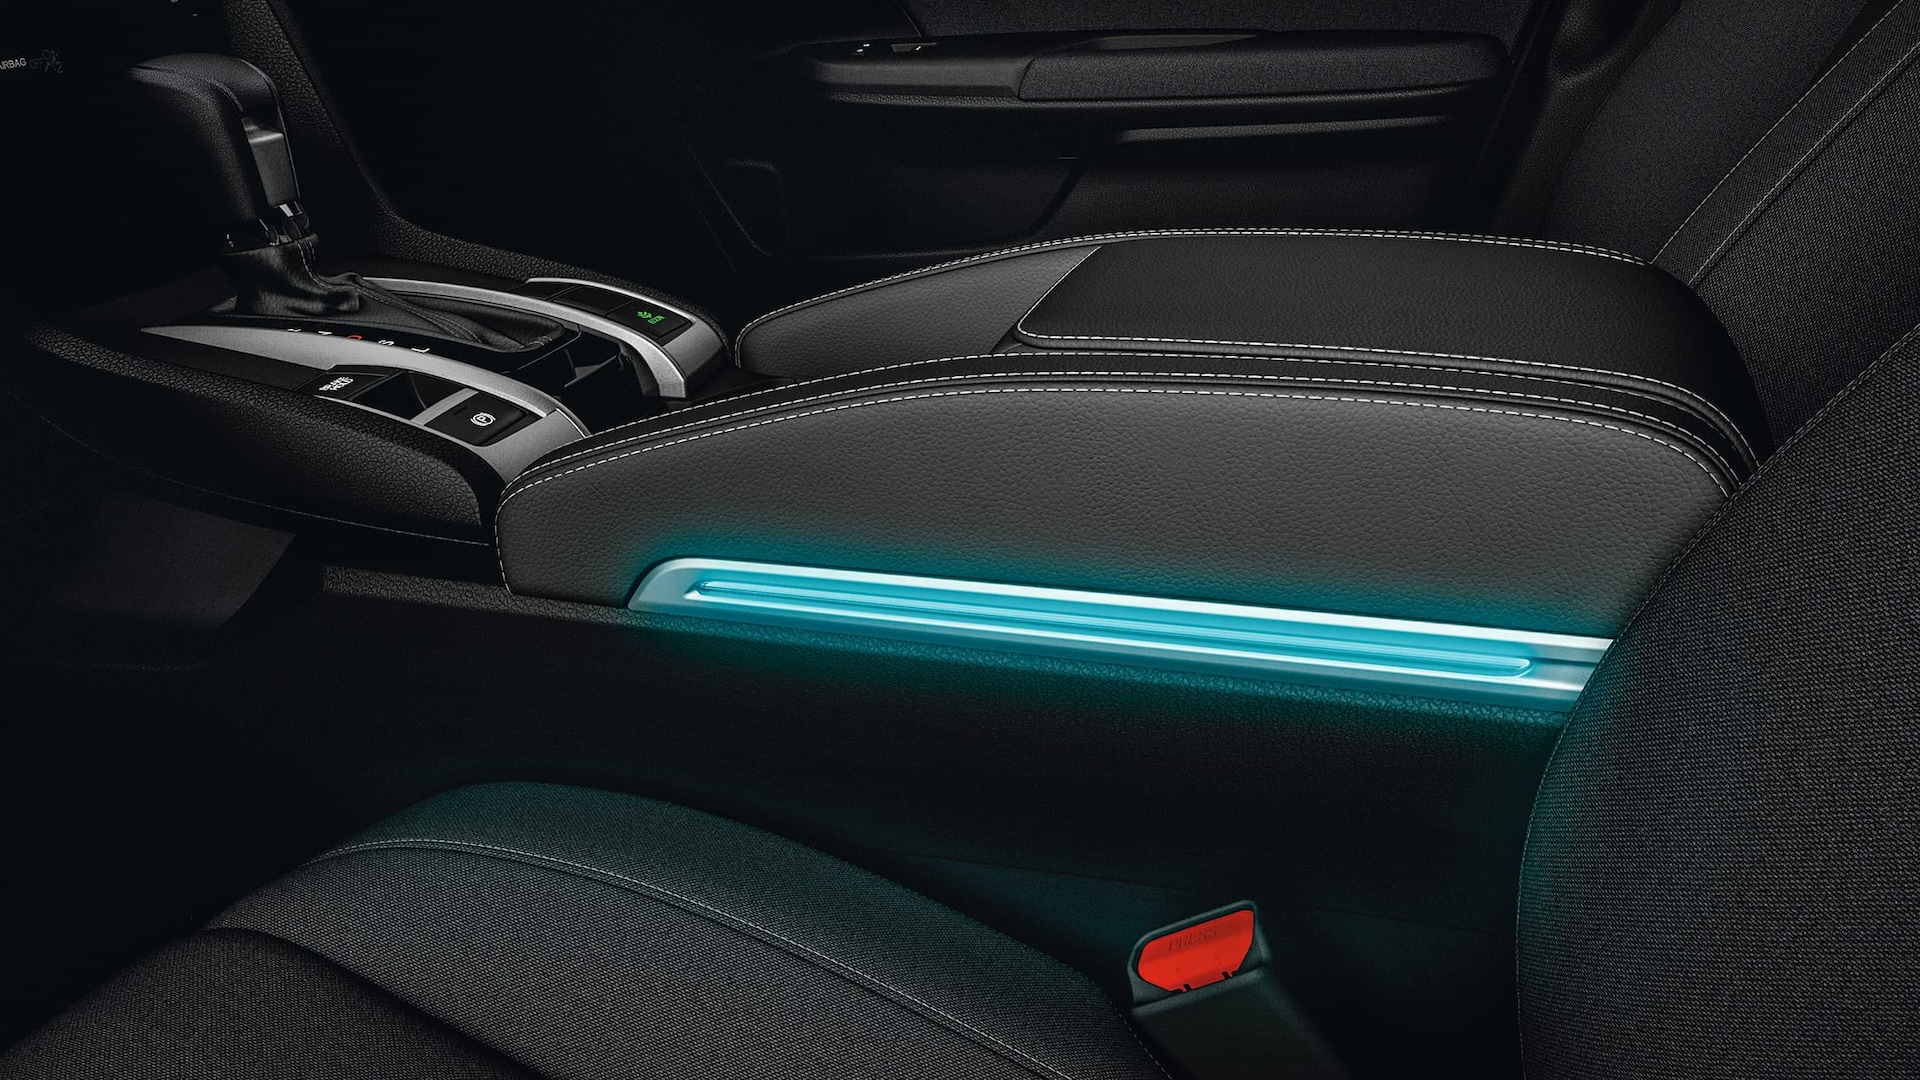 Illuminated armrest detail in the 2020 Honda Civic Sedan.